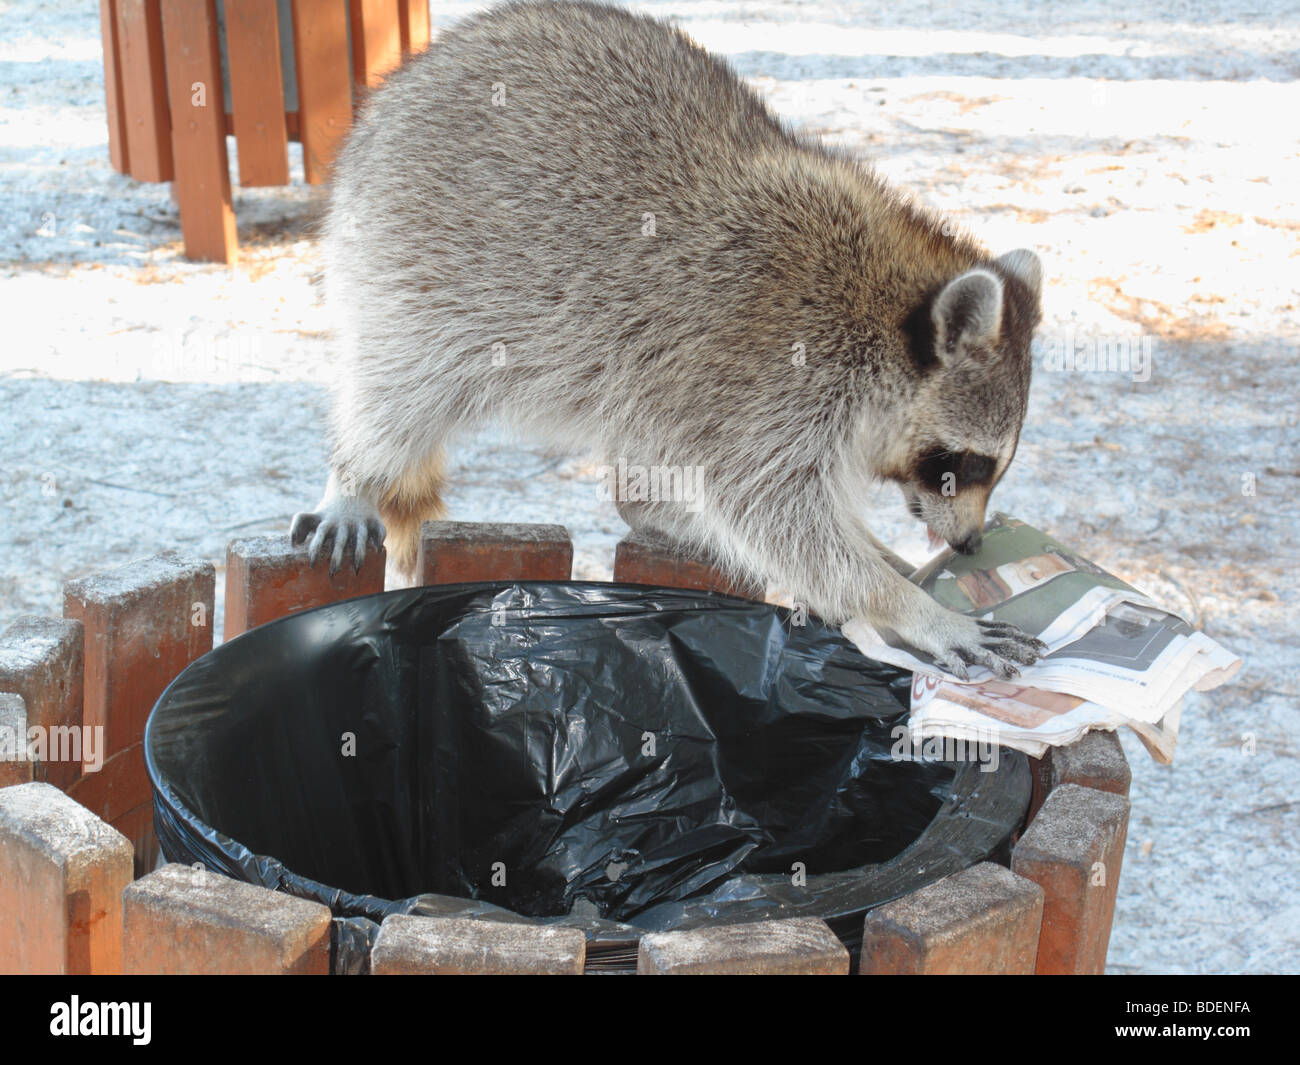 a raccoon digging in a garbage can - Stock Image